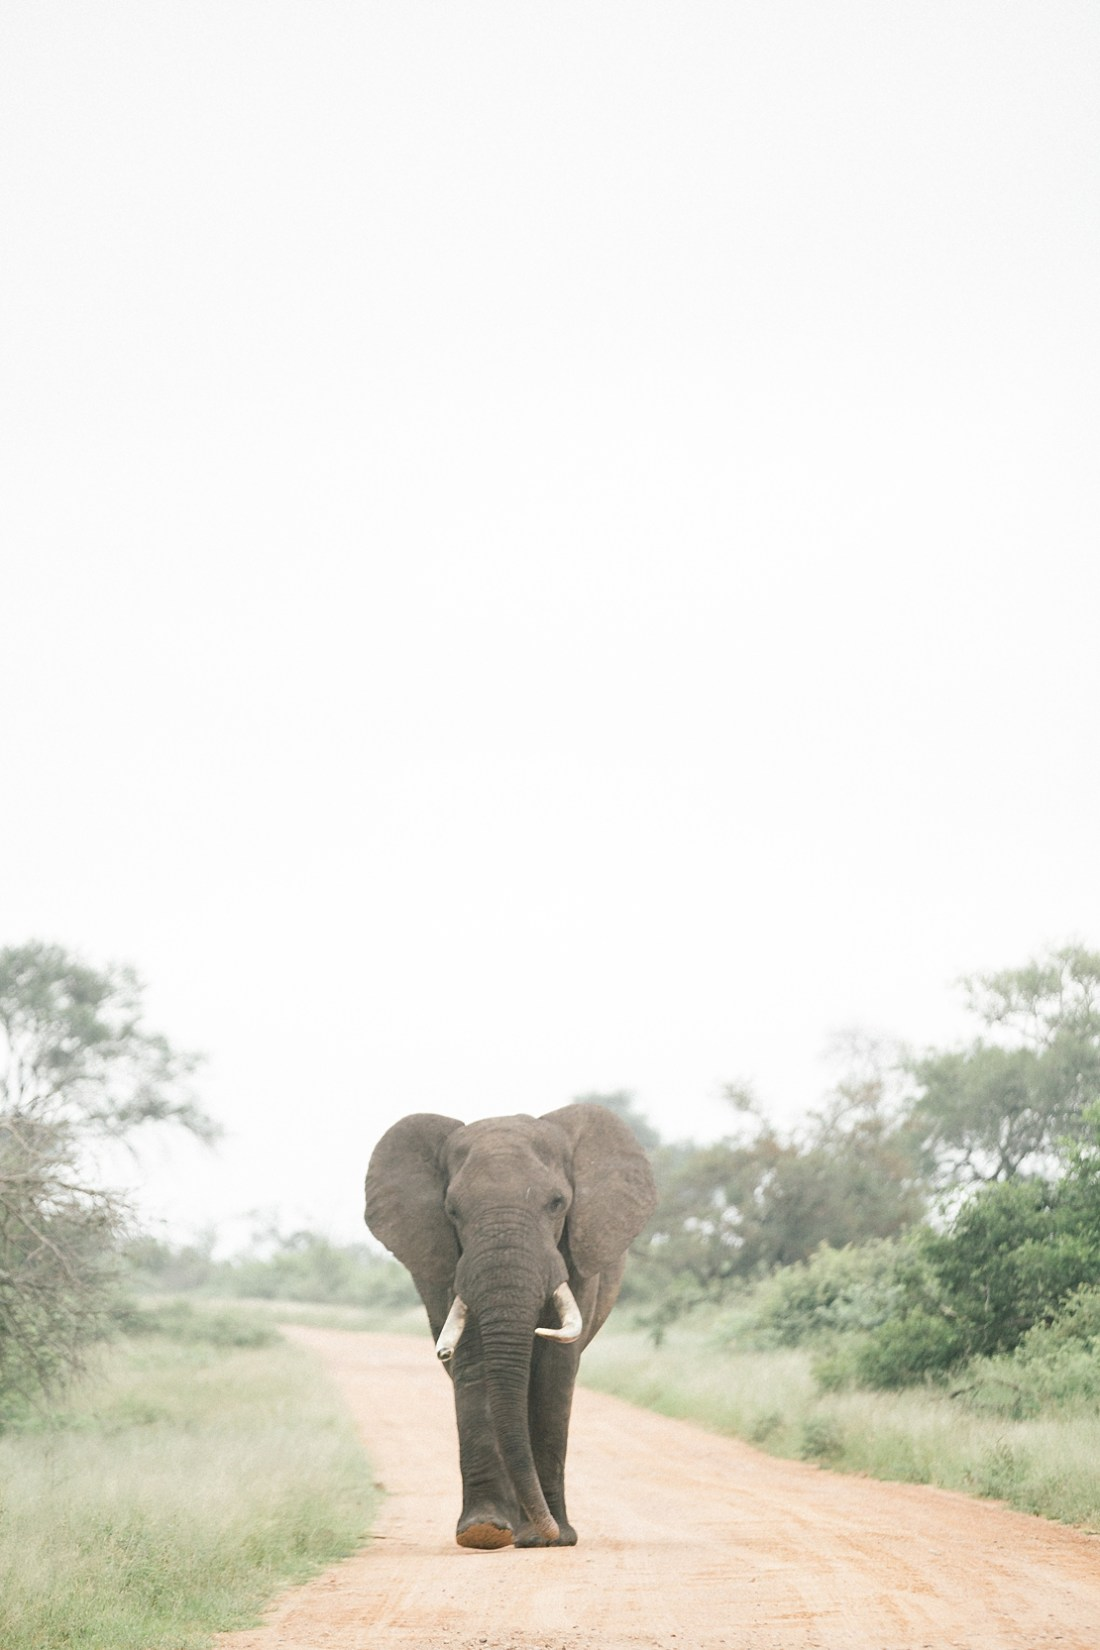 Bull elephant in Kruger national park